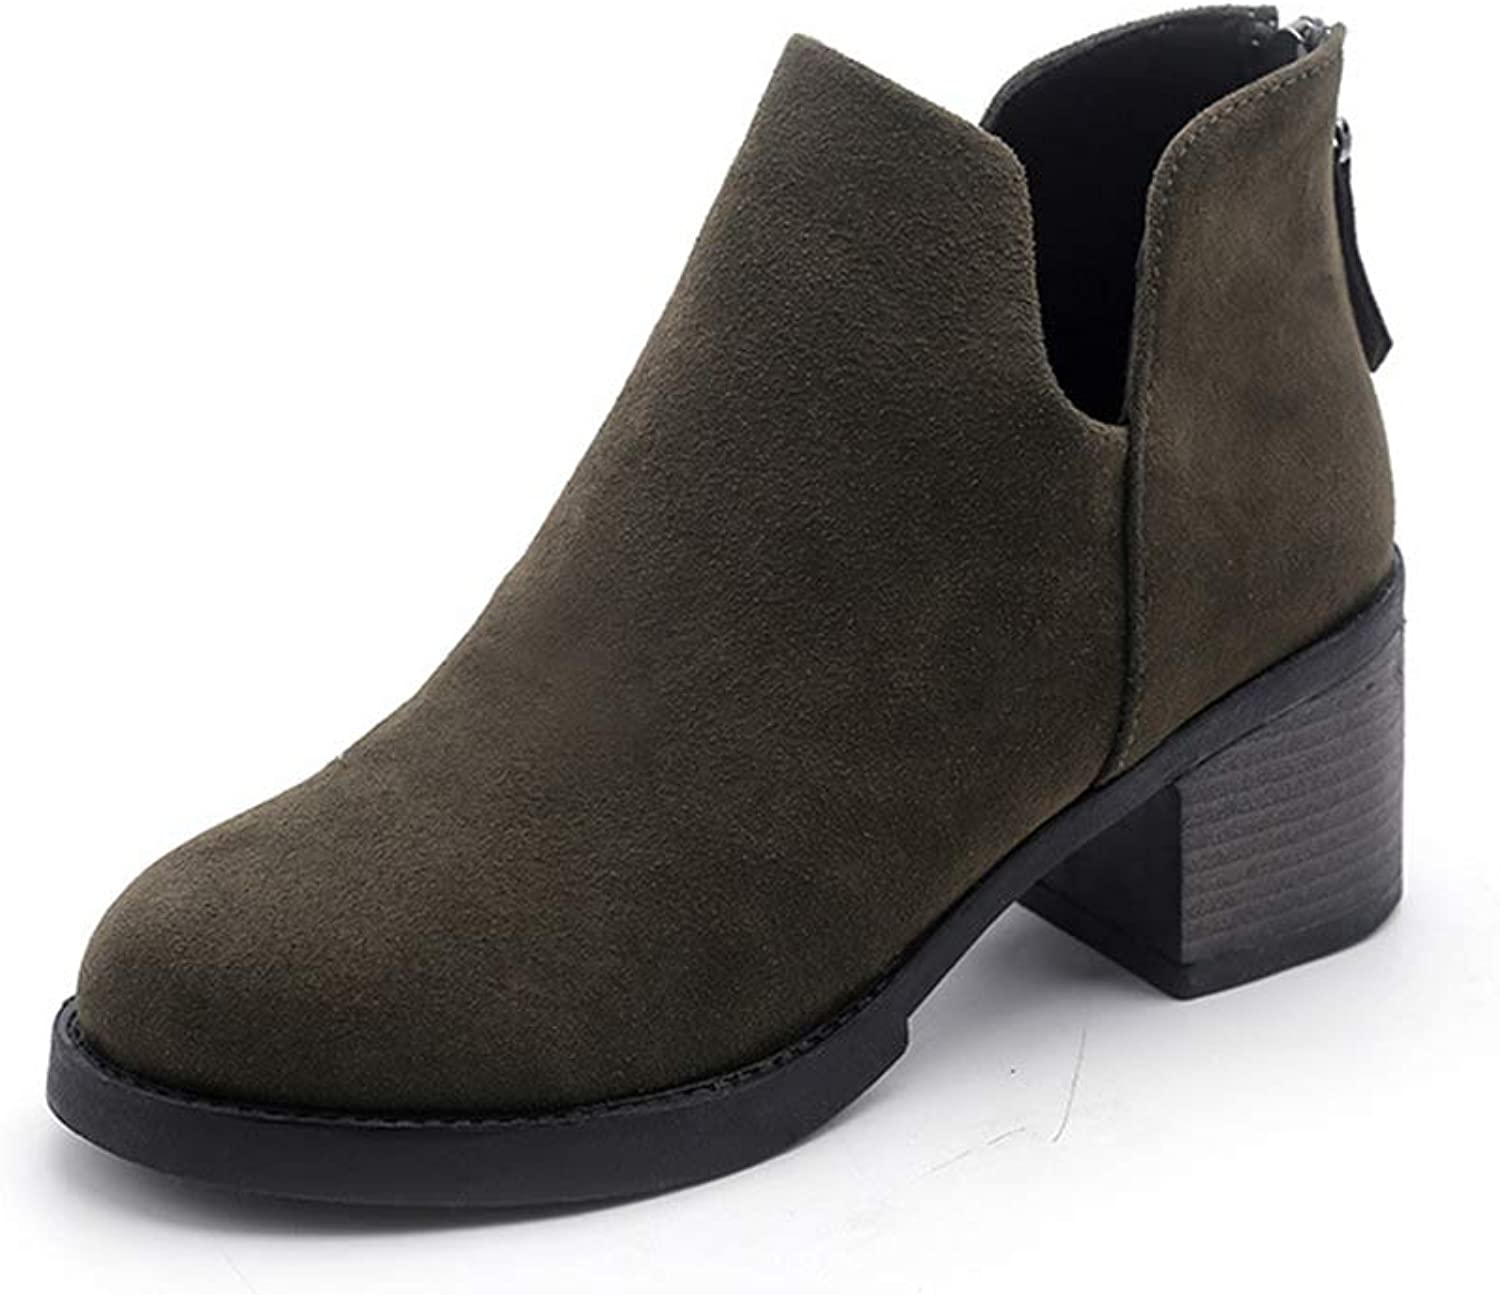 Women's Closed Toe Bootie - Middle Heel Casual Comfortable Walking Boot